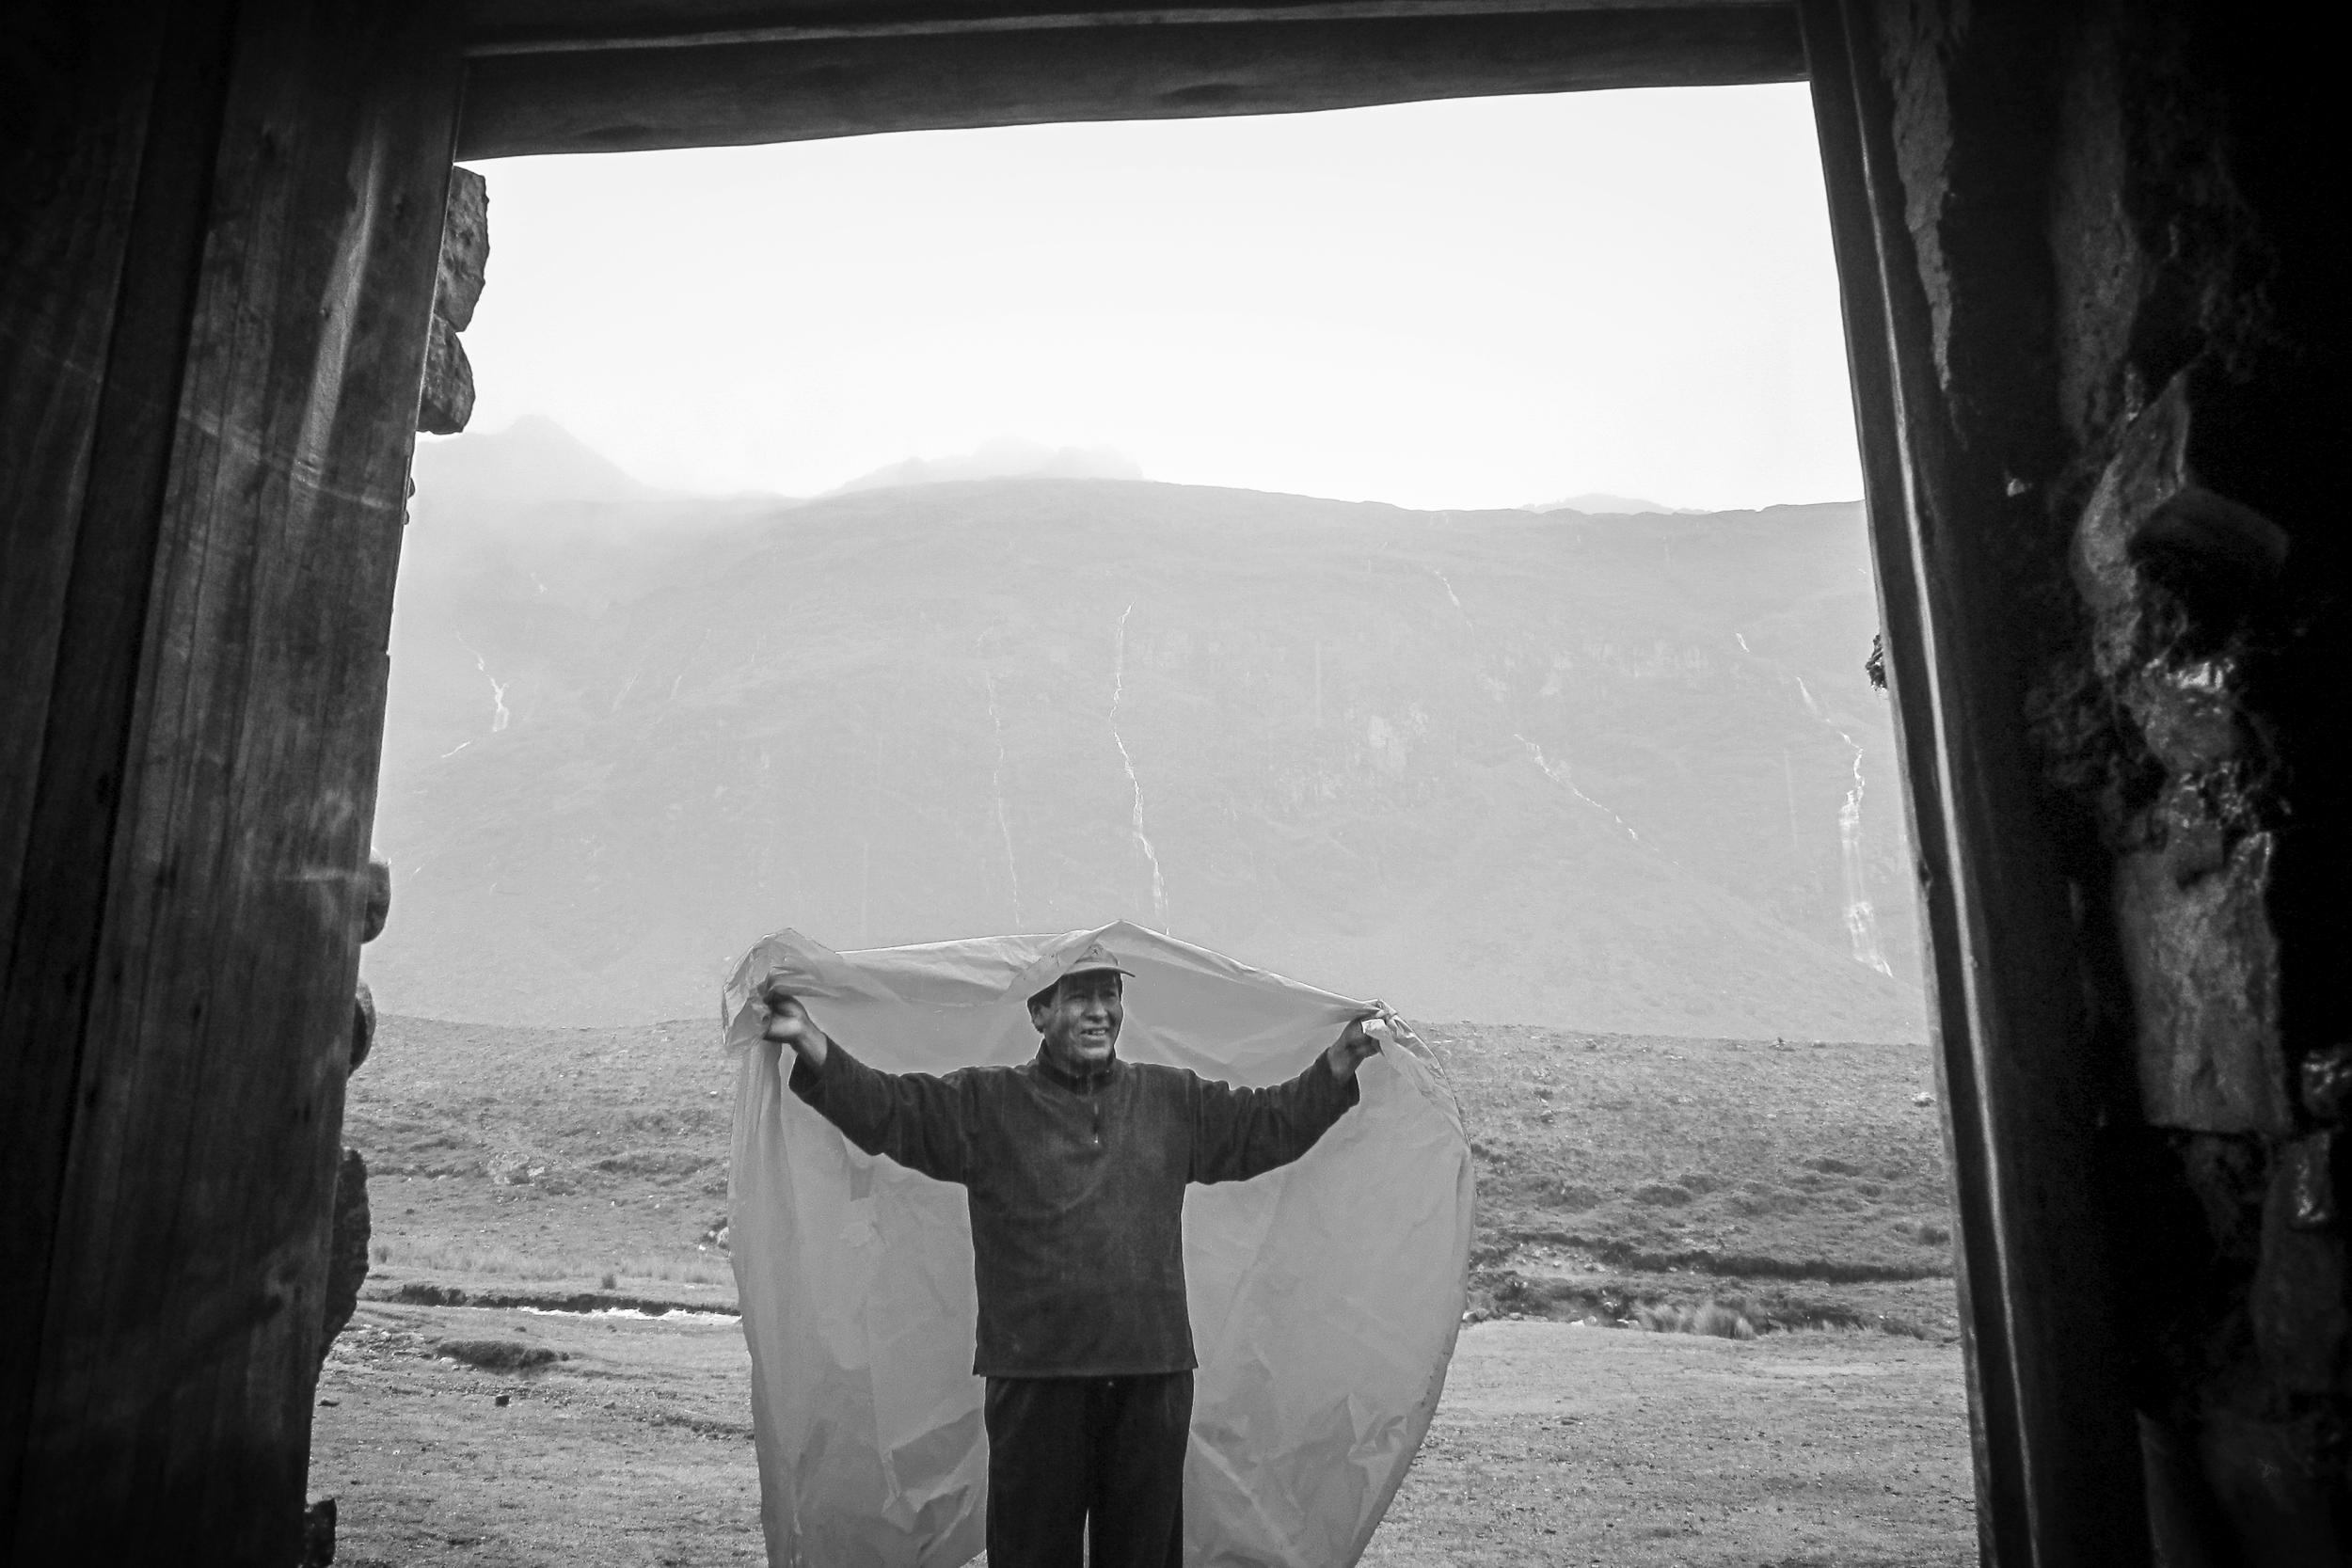 A bolivian man stands in the rain. Somewhere in Bolivia